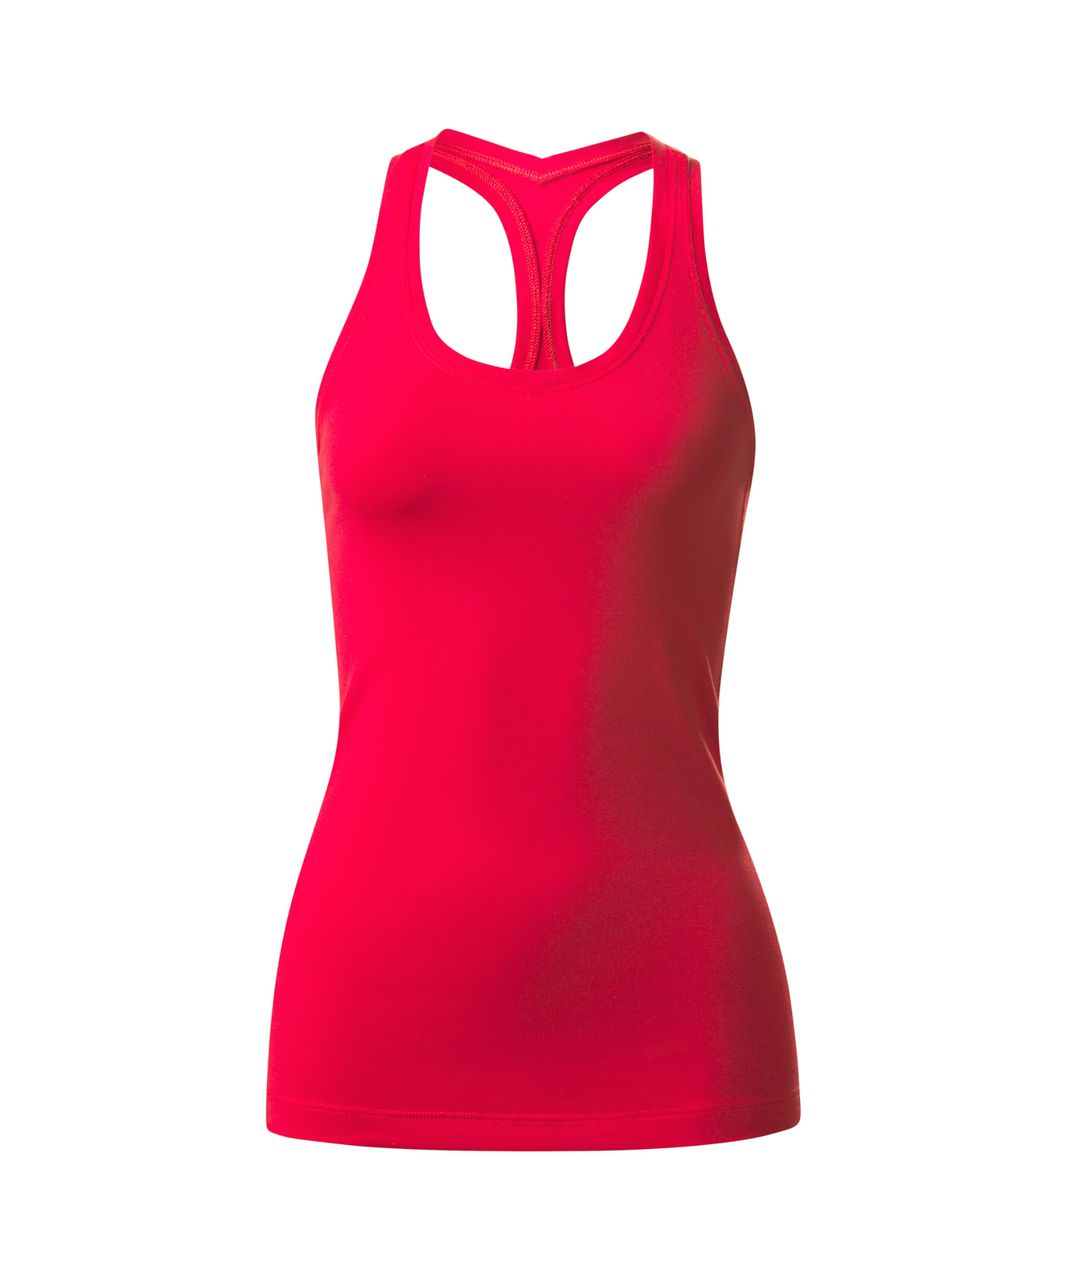 Lululemon Cool Racerback II - True Red